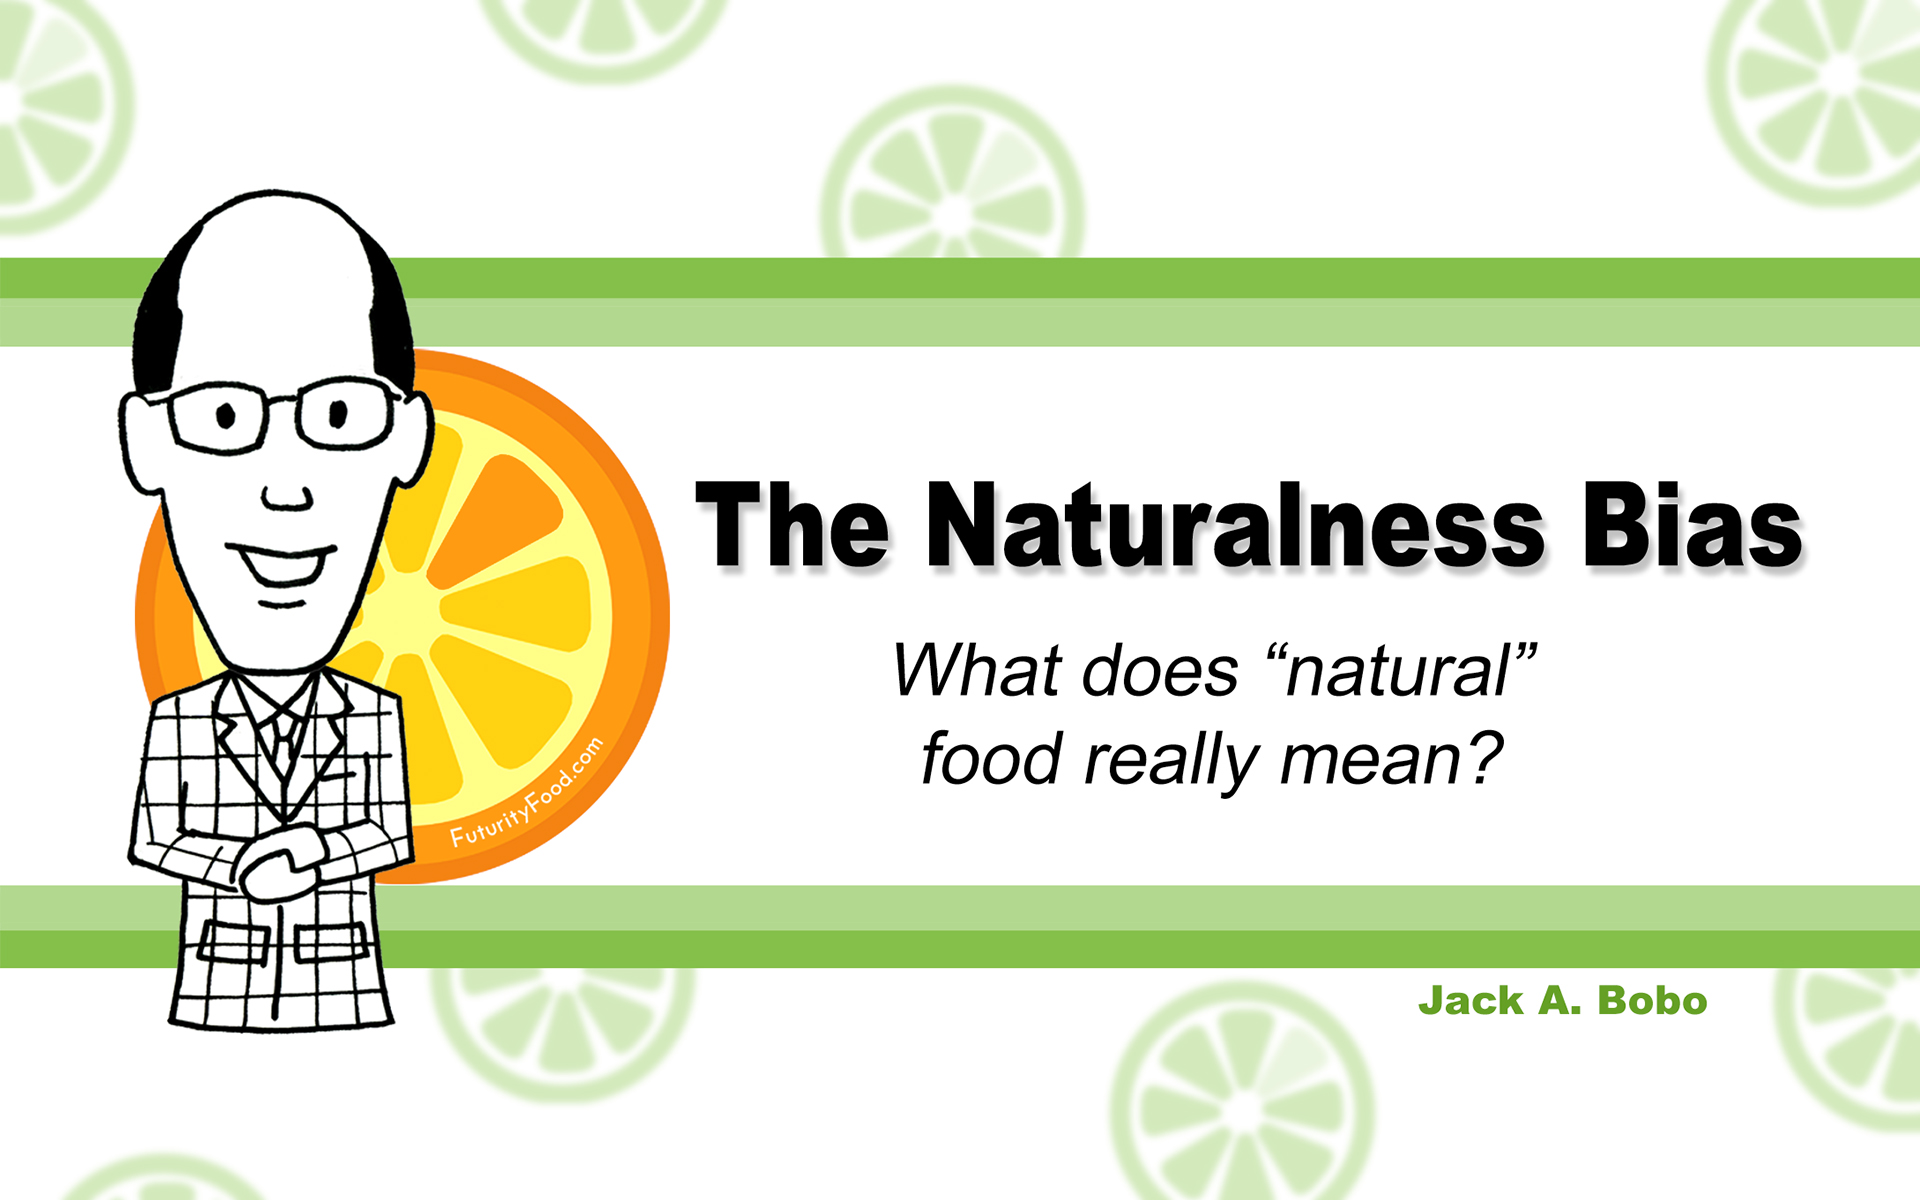 The Naturalness Bias